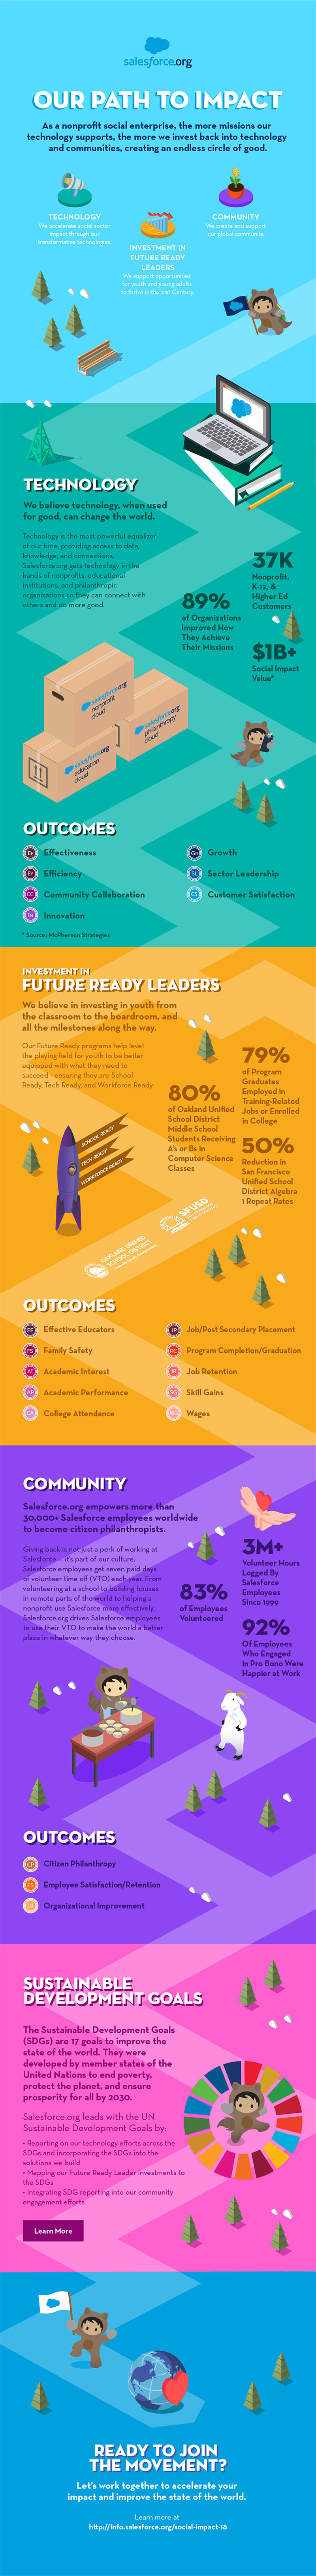 Social Impact Report Infographic